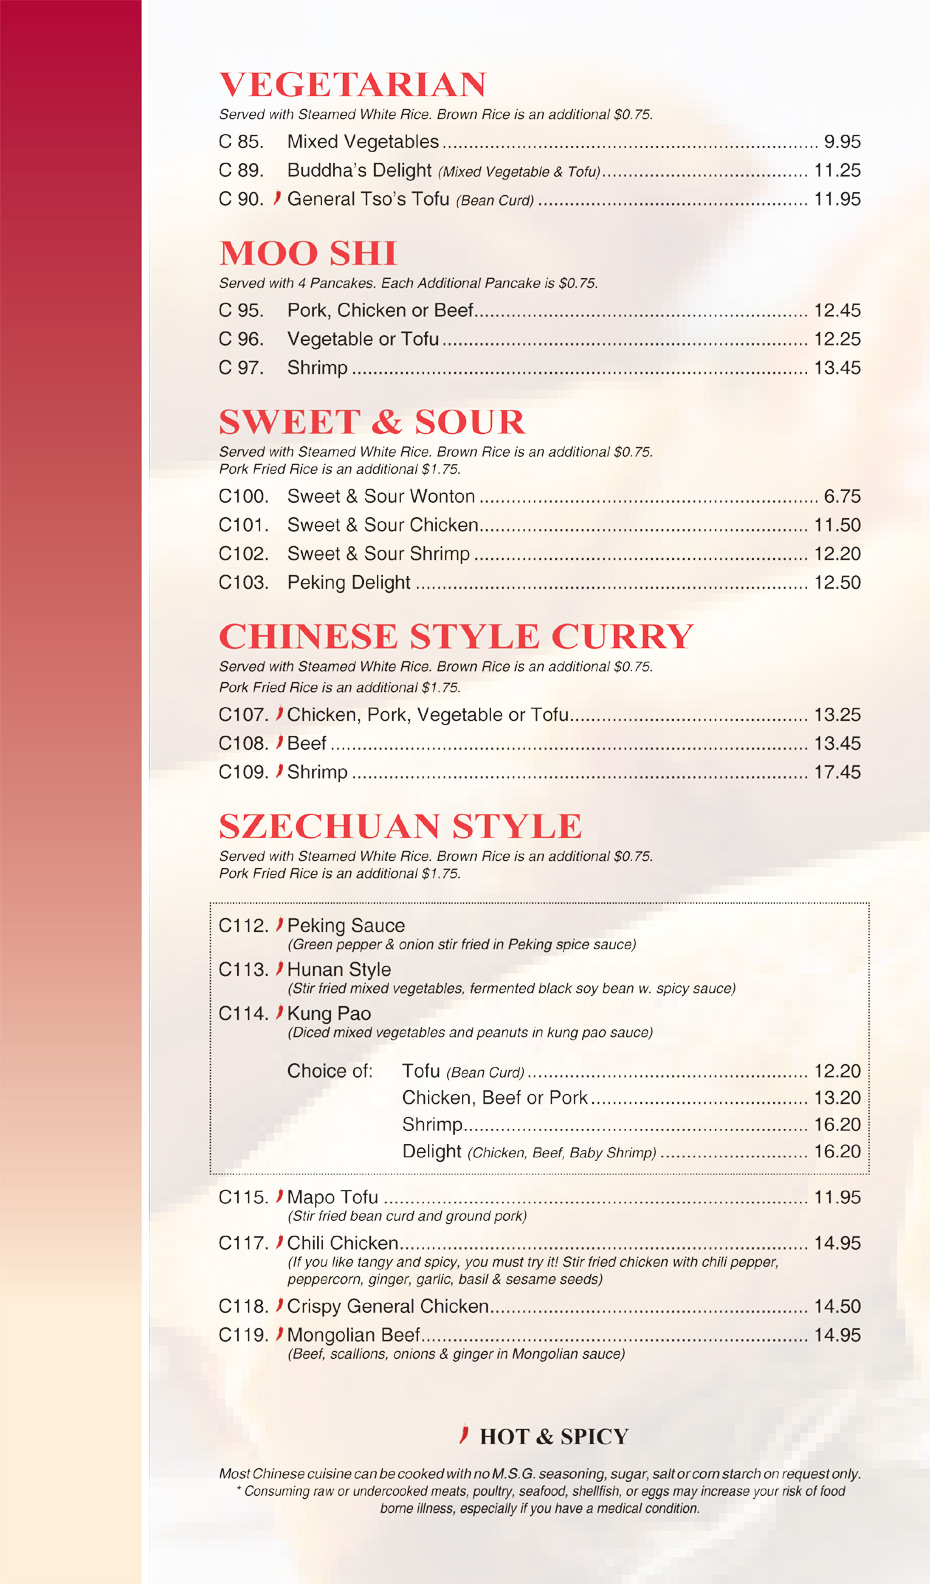 Vegetarian - Moo Shi - Sweet & Sour - Chinese Style Curry - Szechuan Style